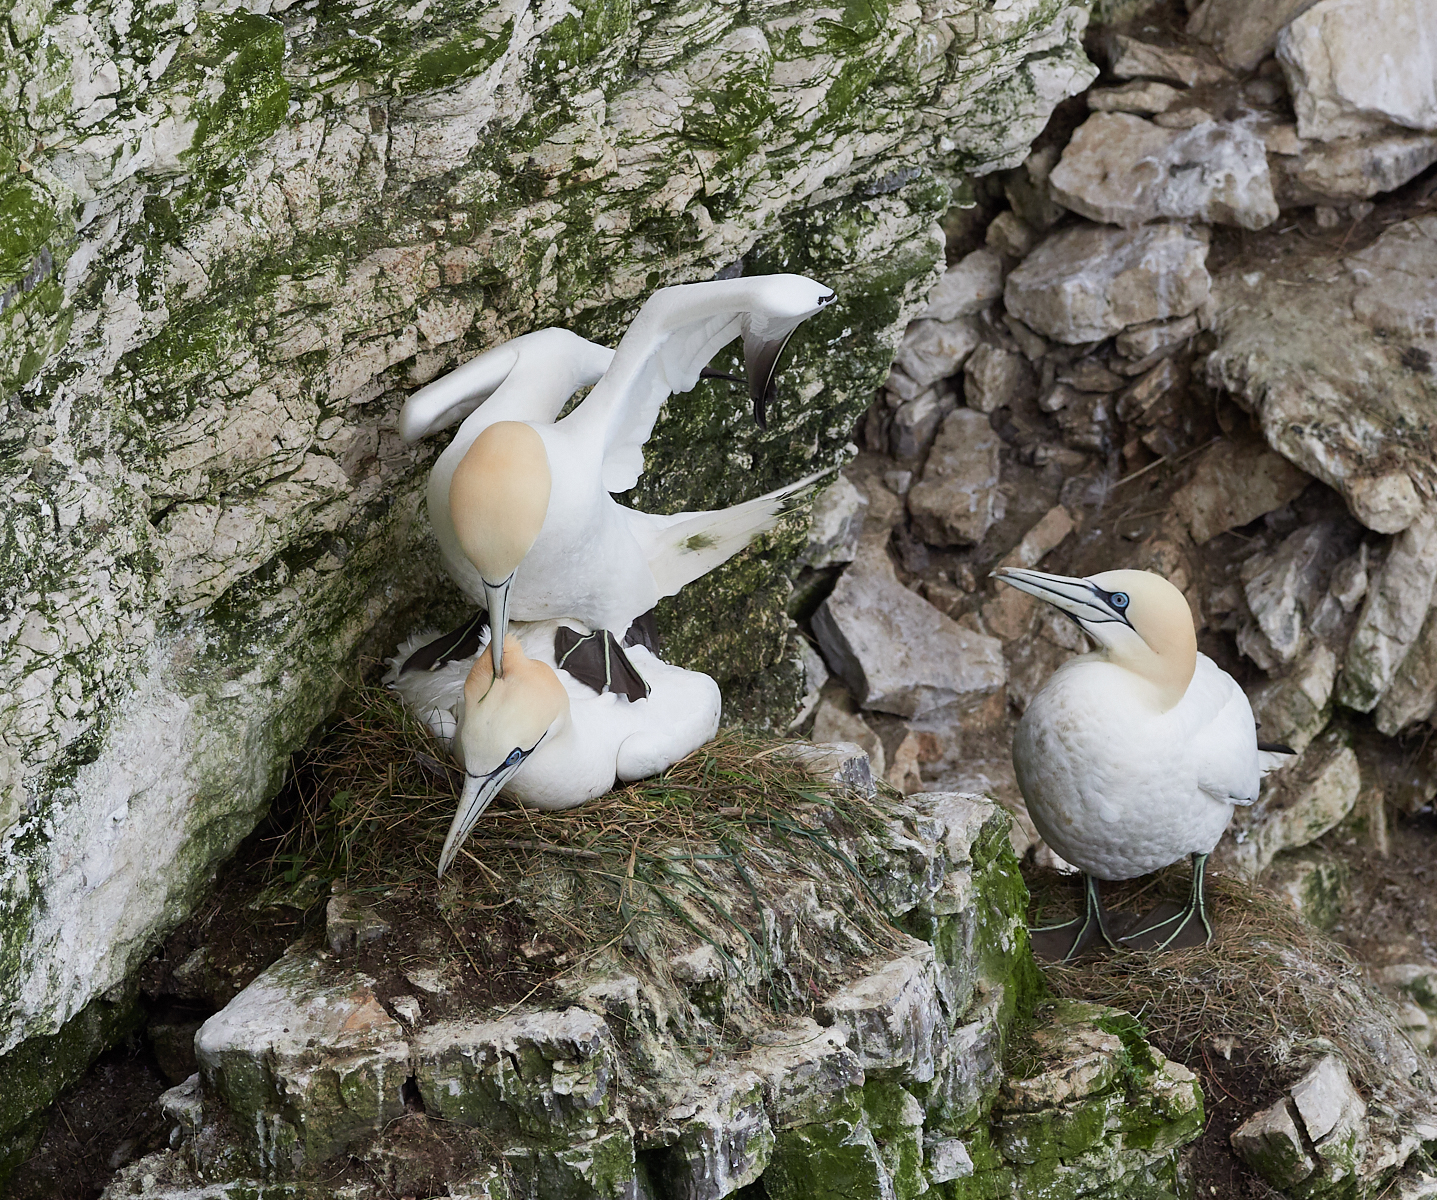 Gannet procreation1600x1200 sRGB.jpg